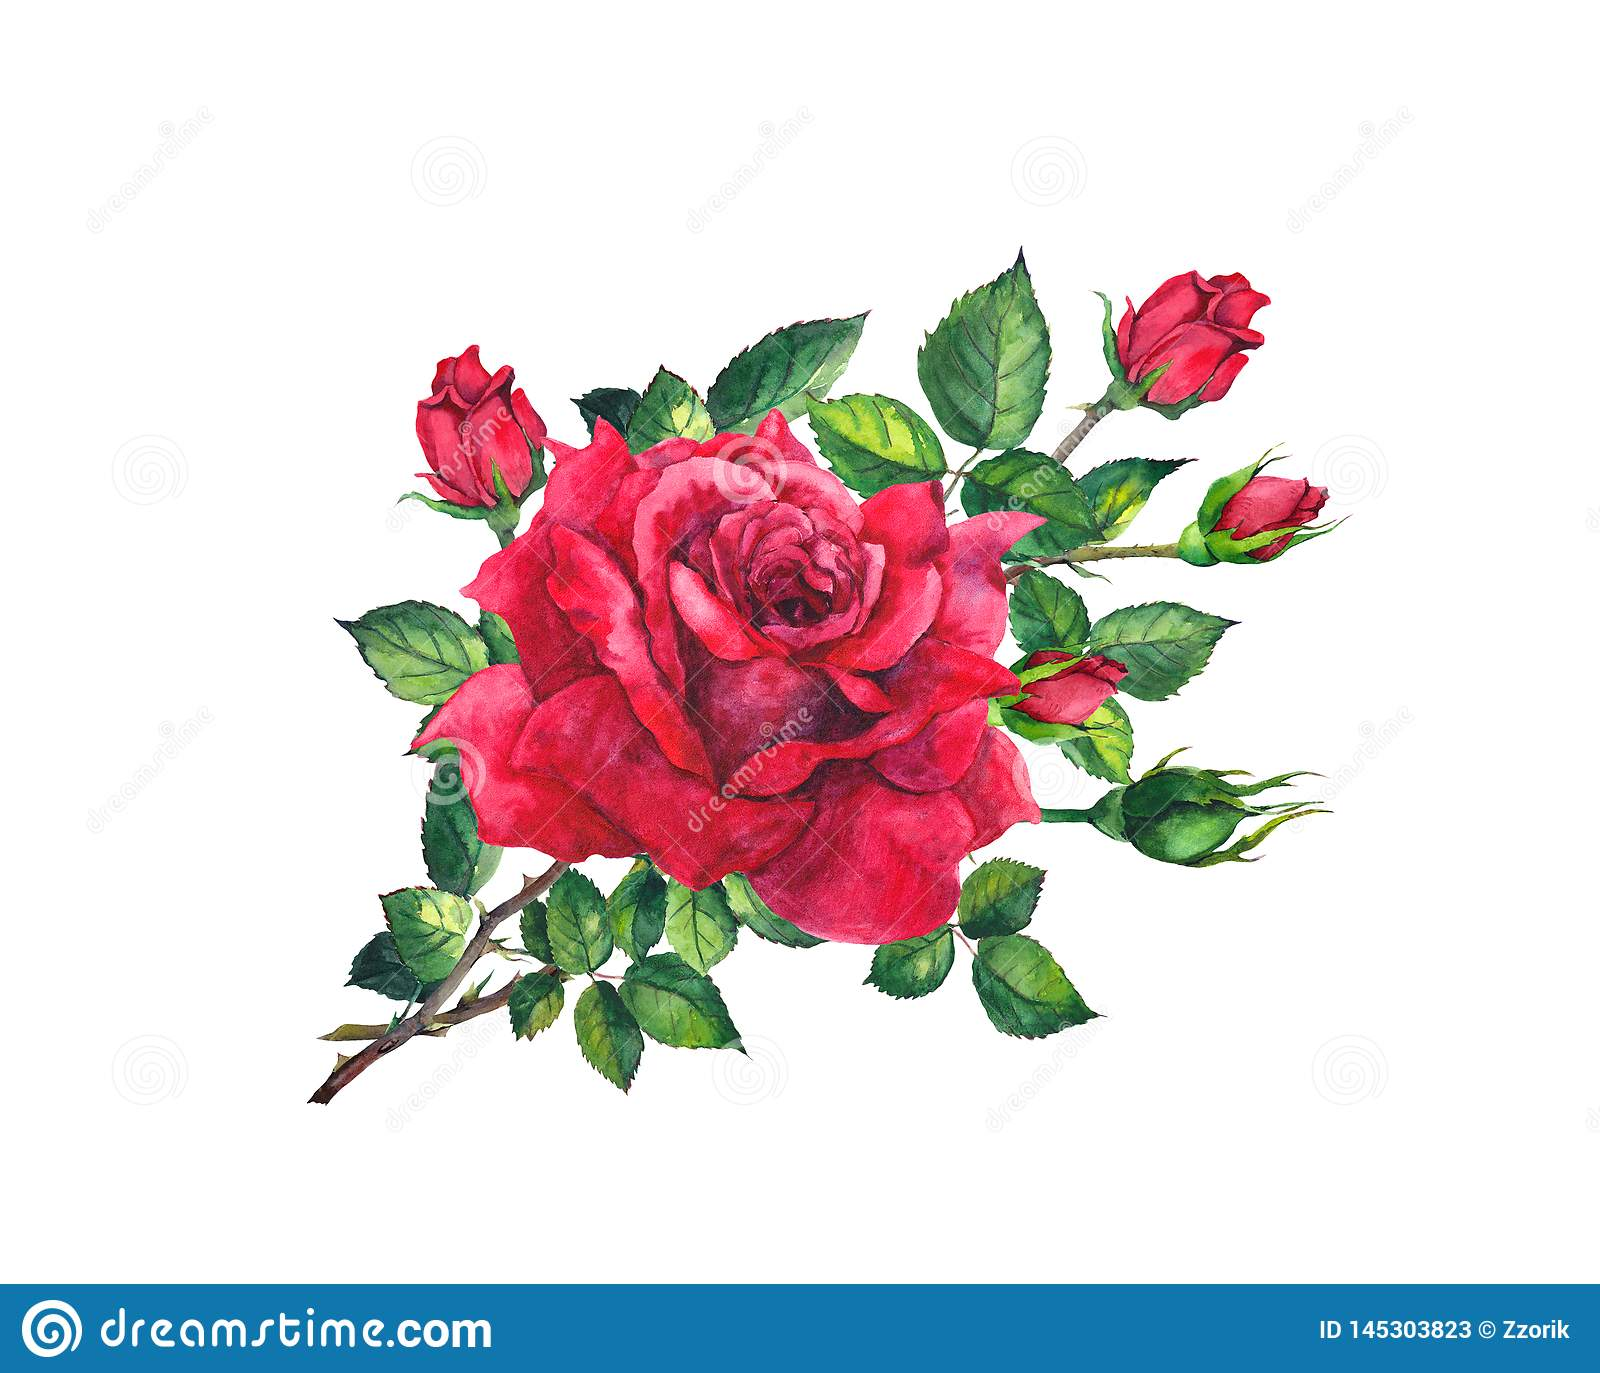 Red rose twig with flowers, leaves, buds. Floral watercolor blooming